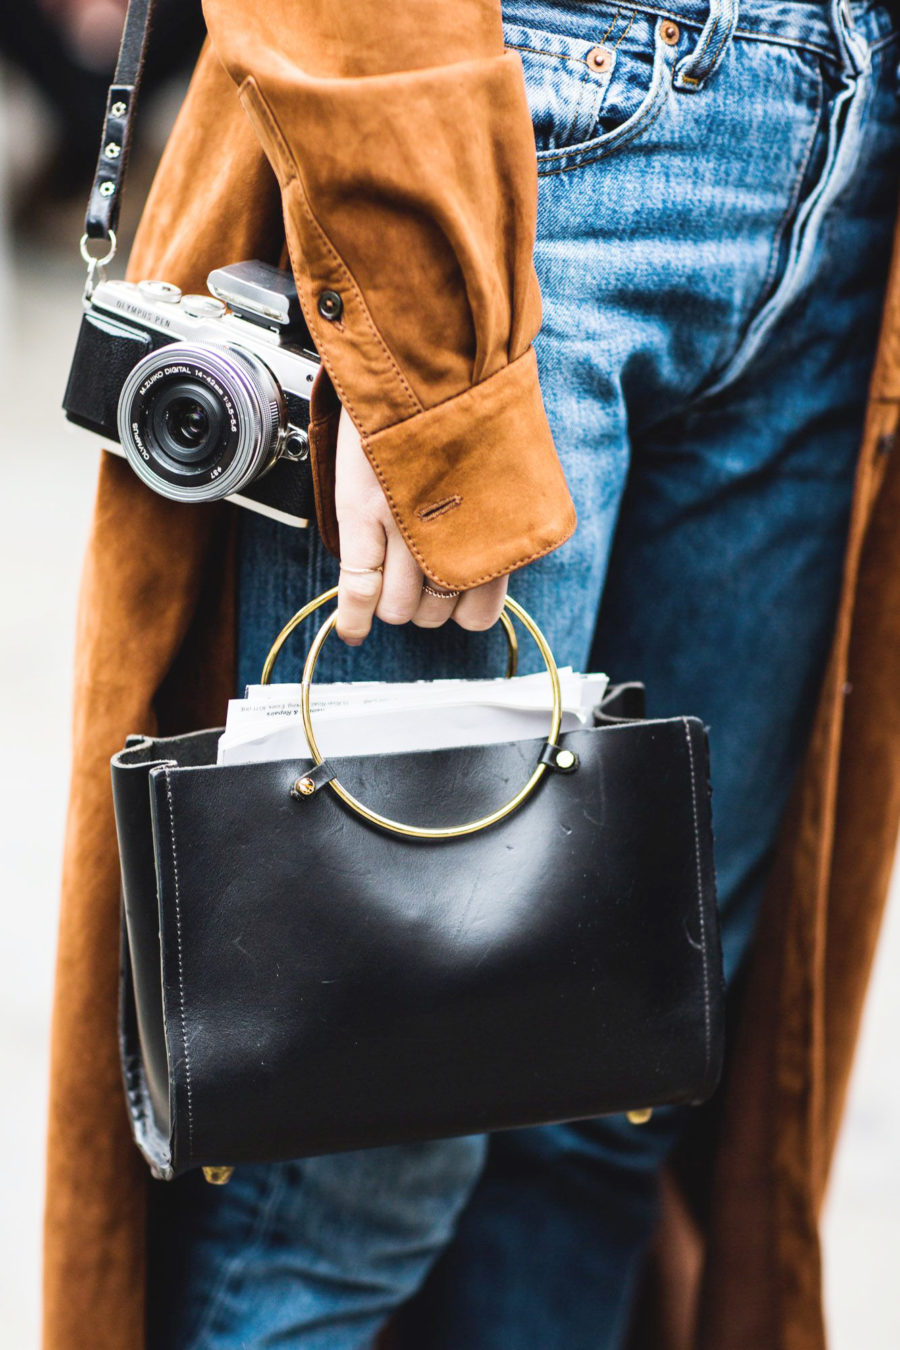 Summer Handbag Styles to Elevate Your Look - ring handle bags // Notjessfashion.com